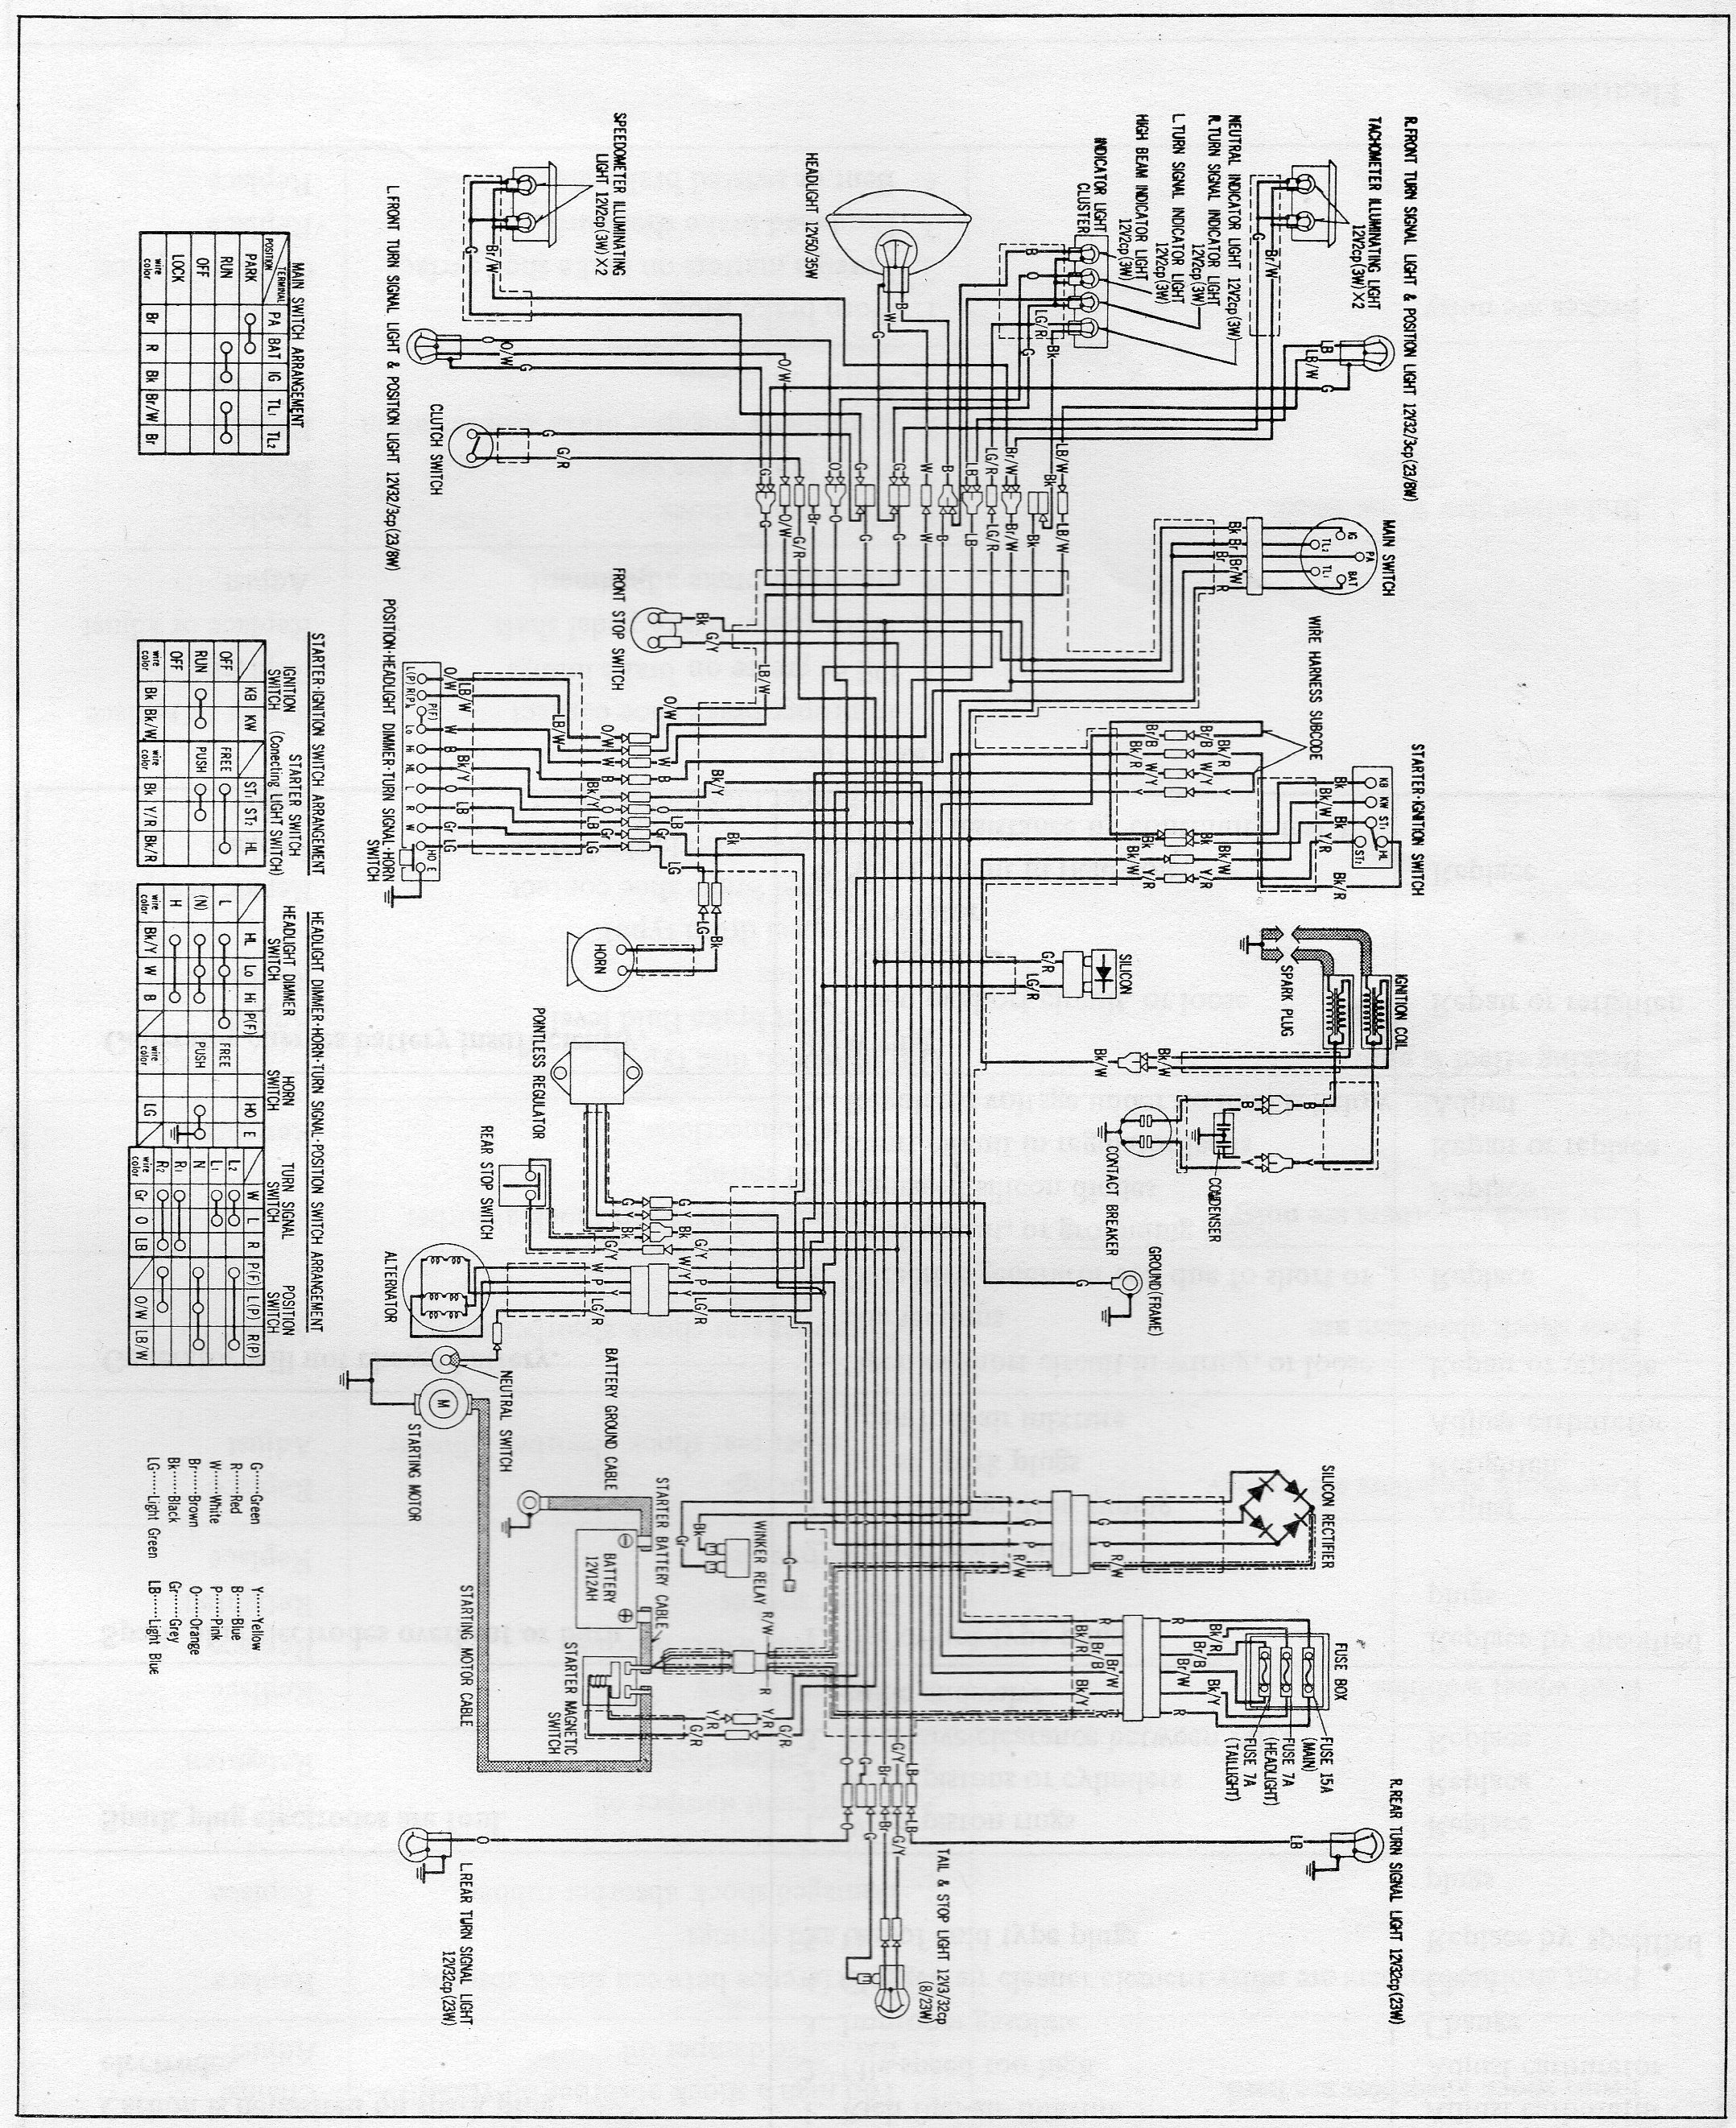 Trailer Wiring Diagrams Wiring Diagram